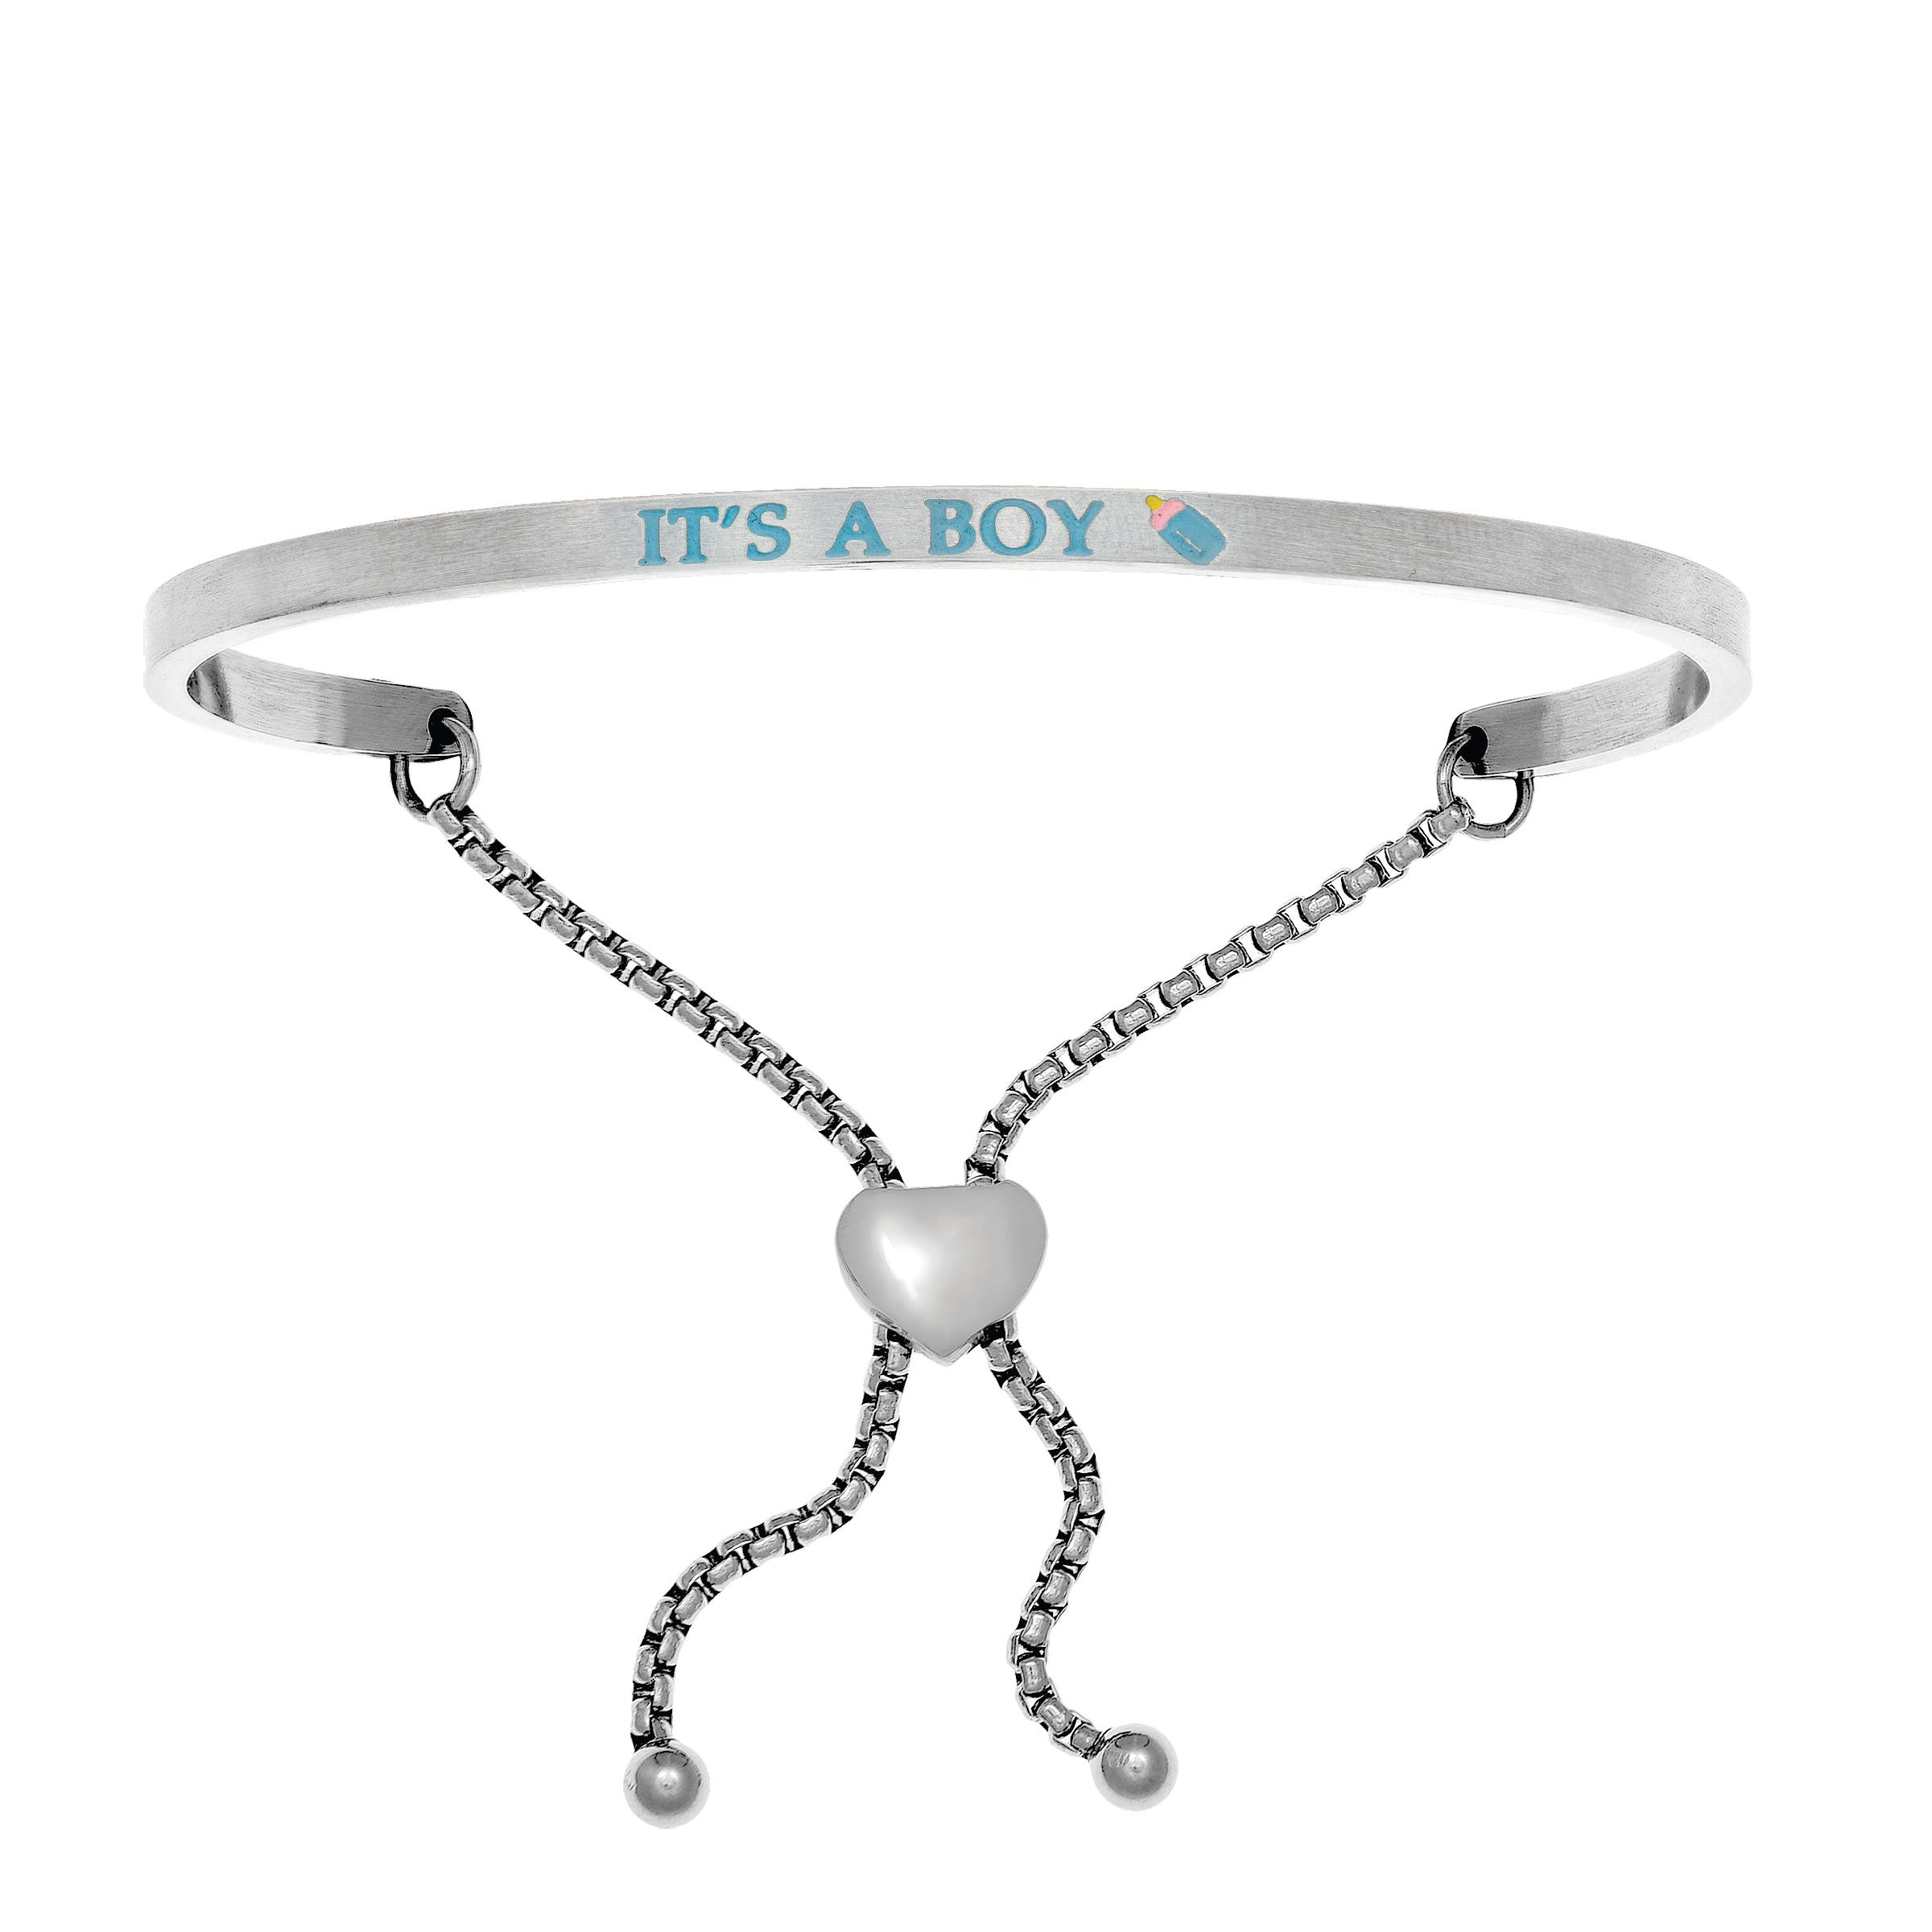 It's A Boy. Intuitions Bolo Bracelet in White Stainless Steel